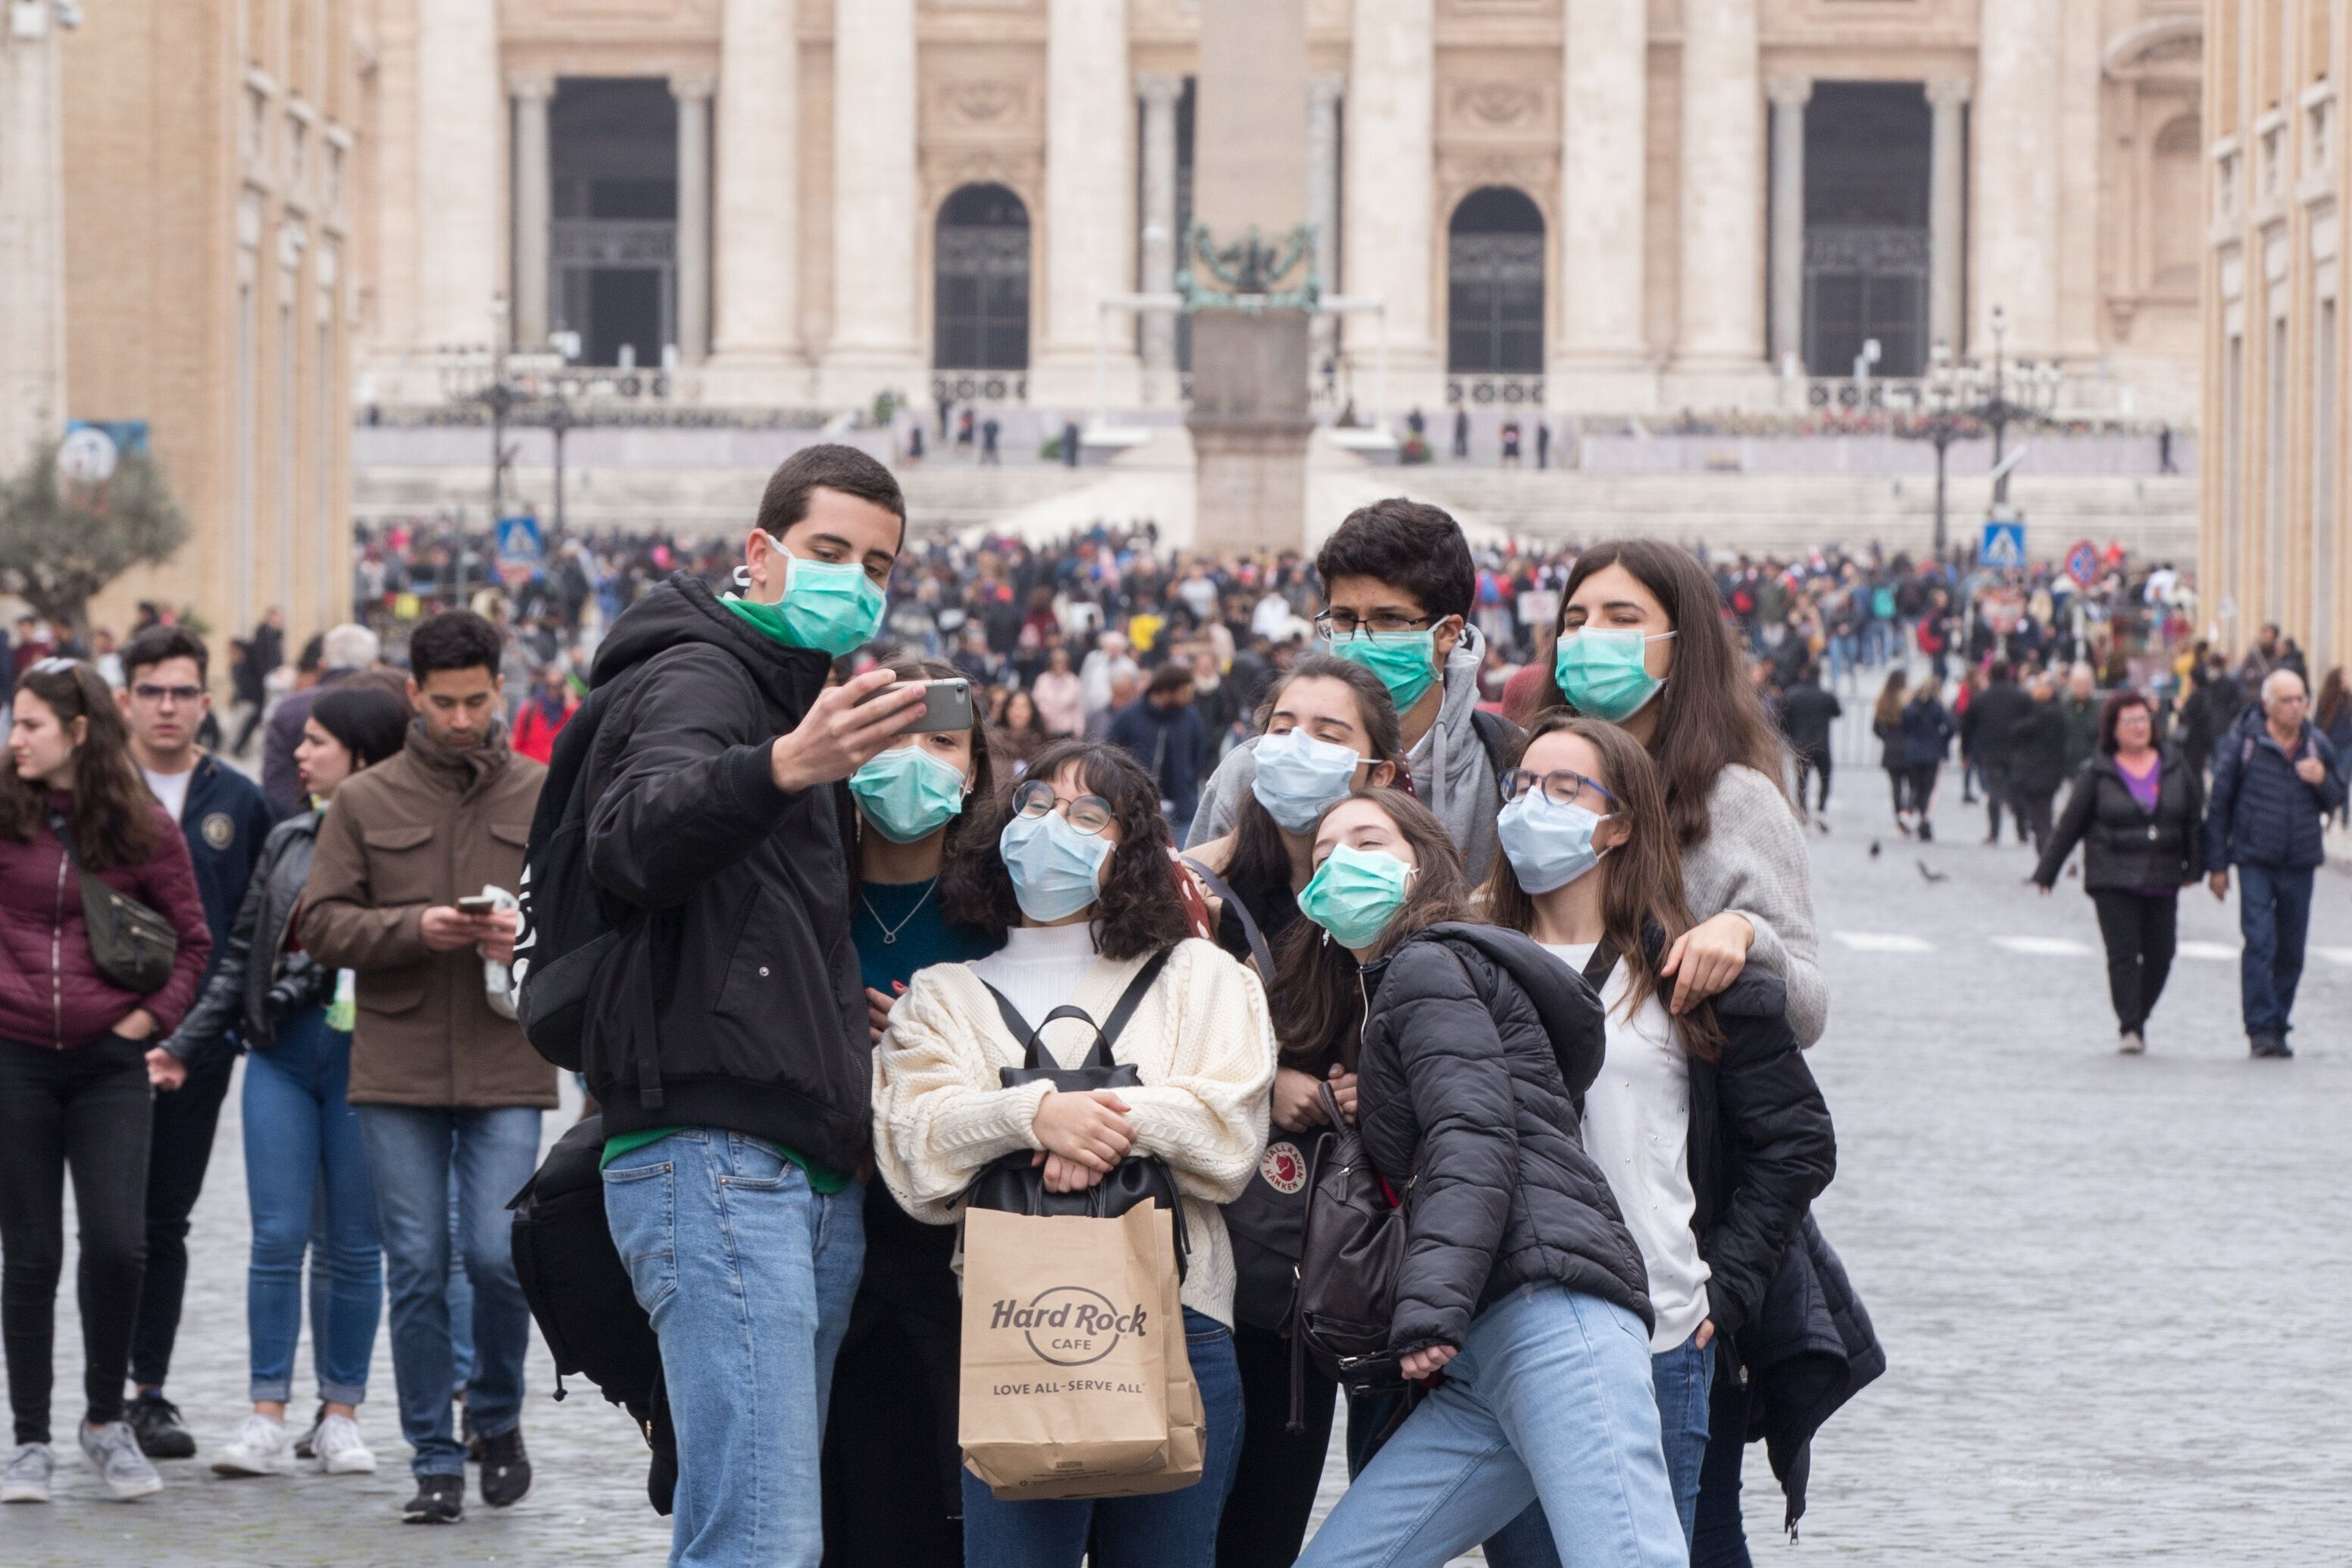 People wear face masks to protect themselves while visiting the Vatican on Ash Wednesday.